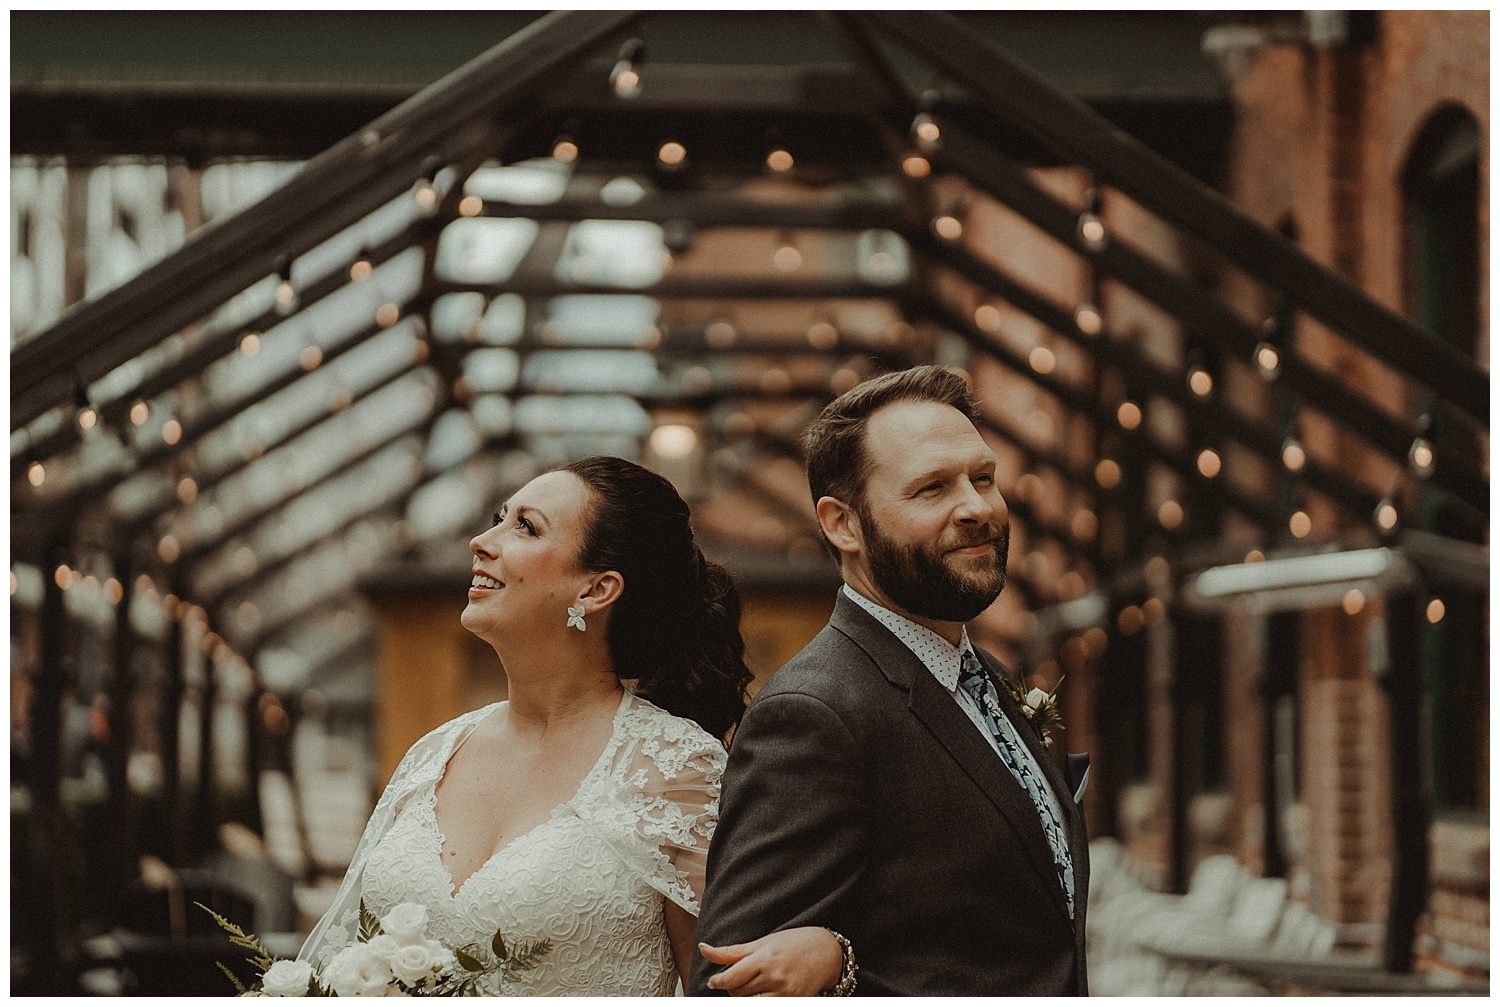 Katie Marie Photography | Archeo Wedding Arta Gallery Wedding | Distillery District Wedding | Toronto Wedding Photographer | Hamilton Toronto Ontario Wedding Photographer |_0027.jpg